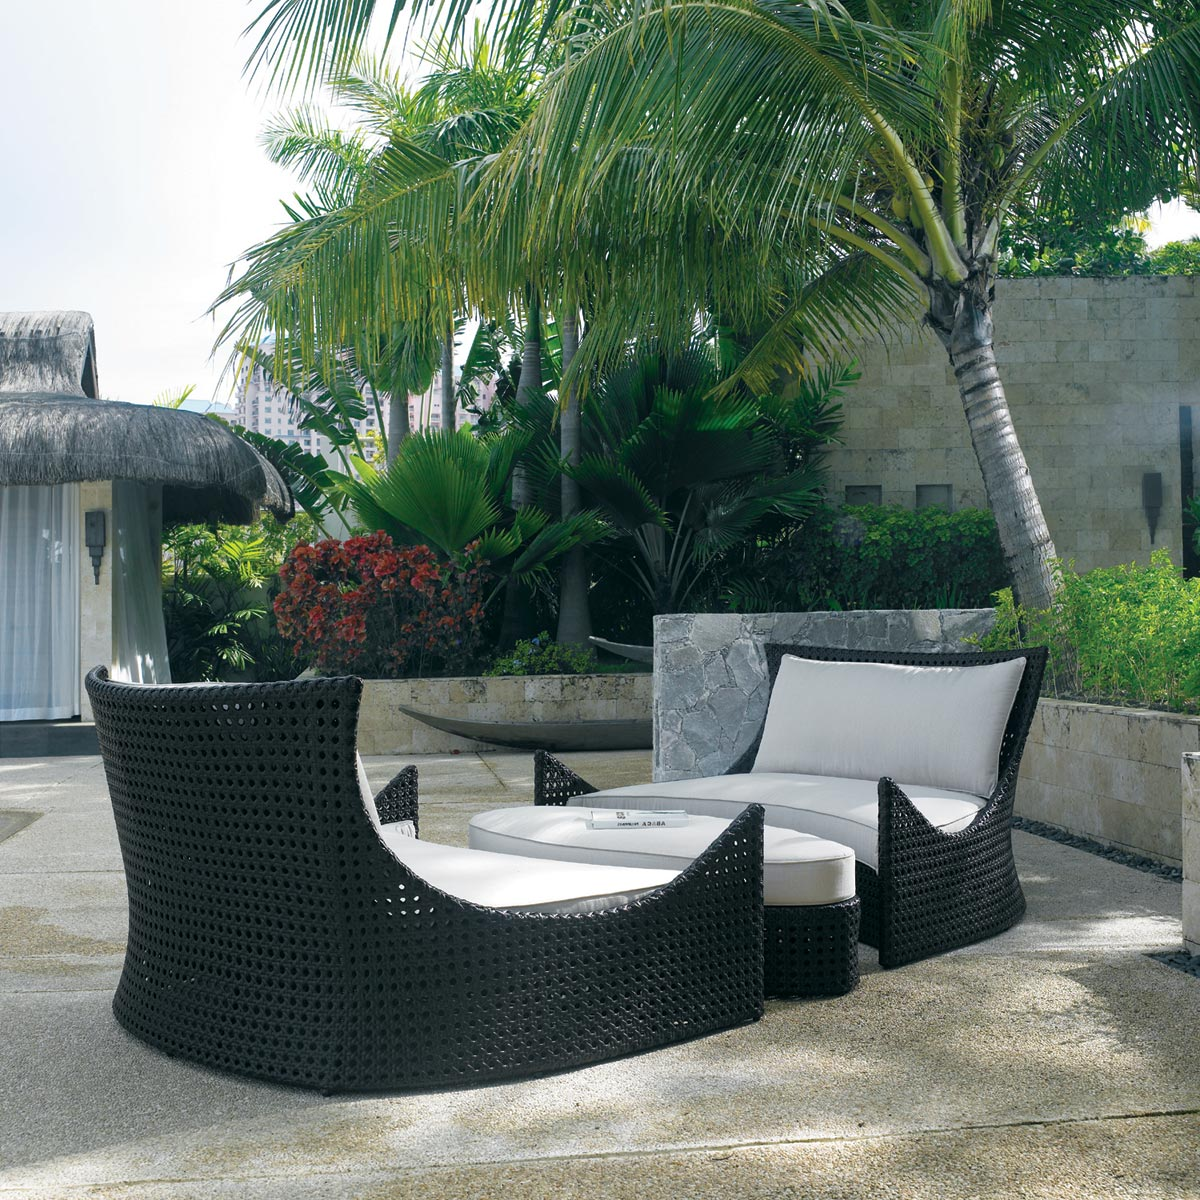 mid day nap on these outdoor patio daybeds